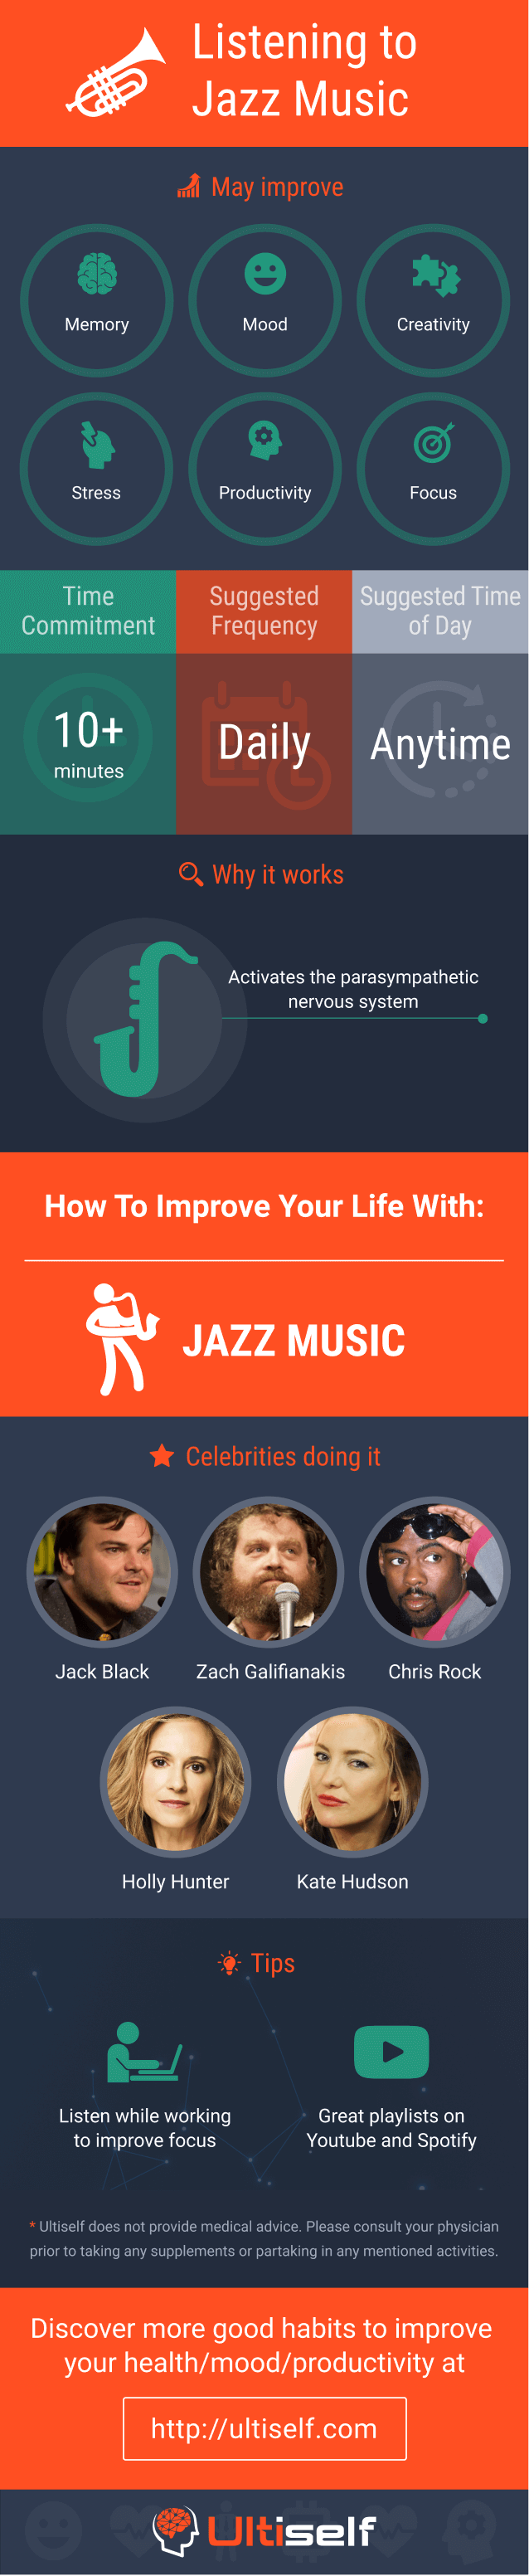 Listening to Jazz Music infographic